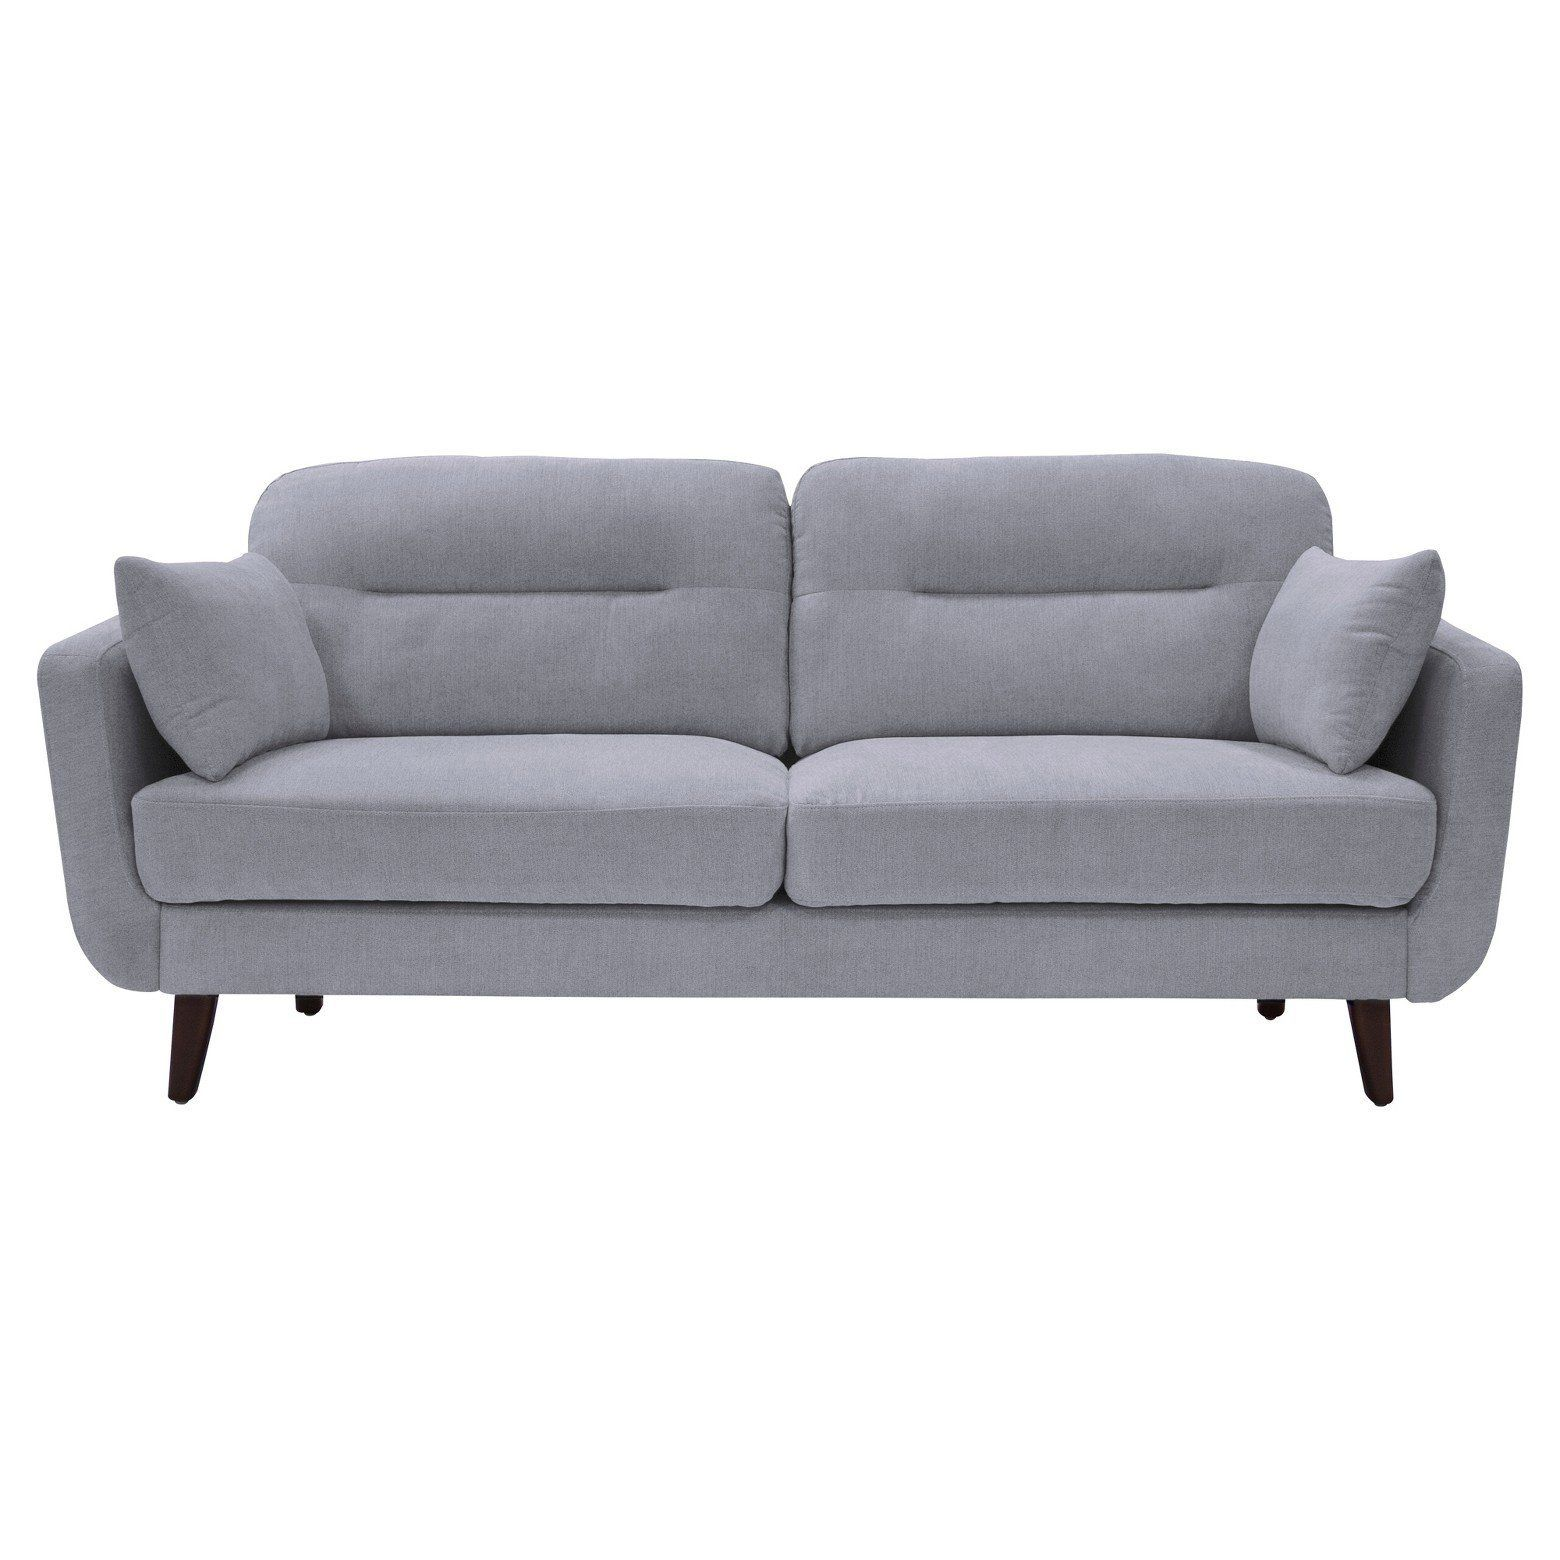 Settee No Arms 12 Couches For Small Spaces That Are Actually Roomy Huffpost Life